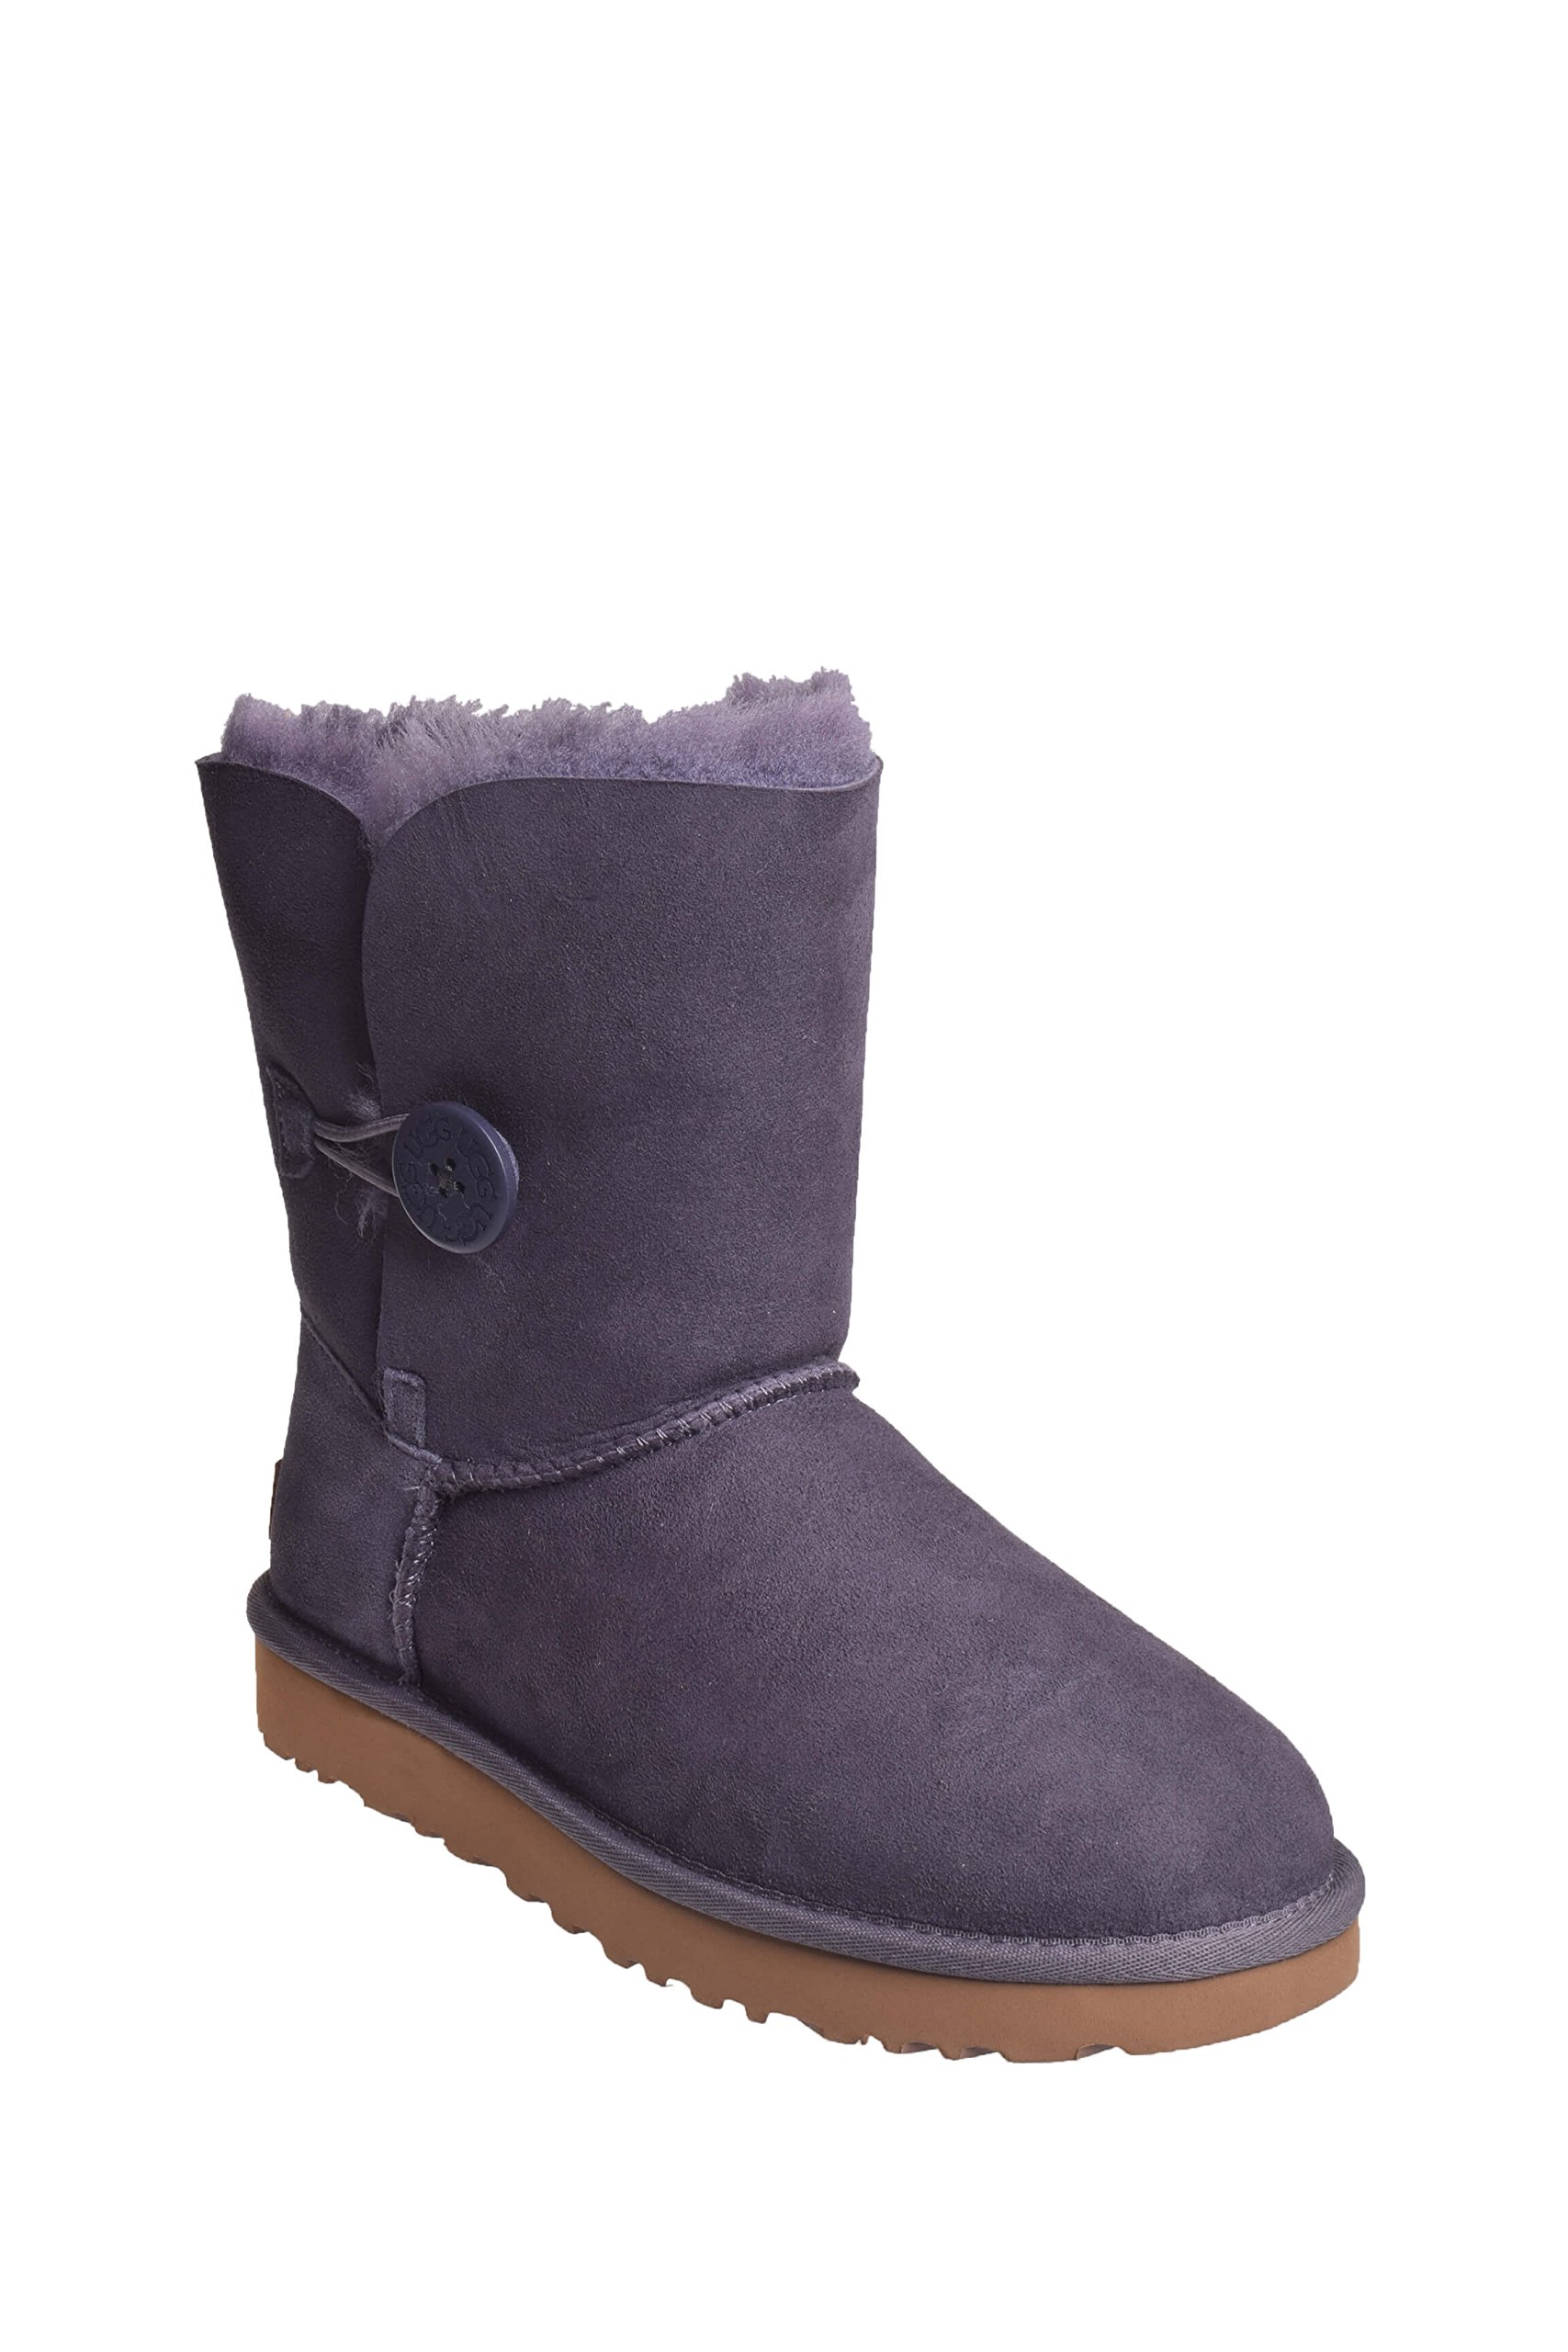 UGG Womens Bailey Button II Shearling Boot Nightfall Size 5